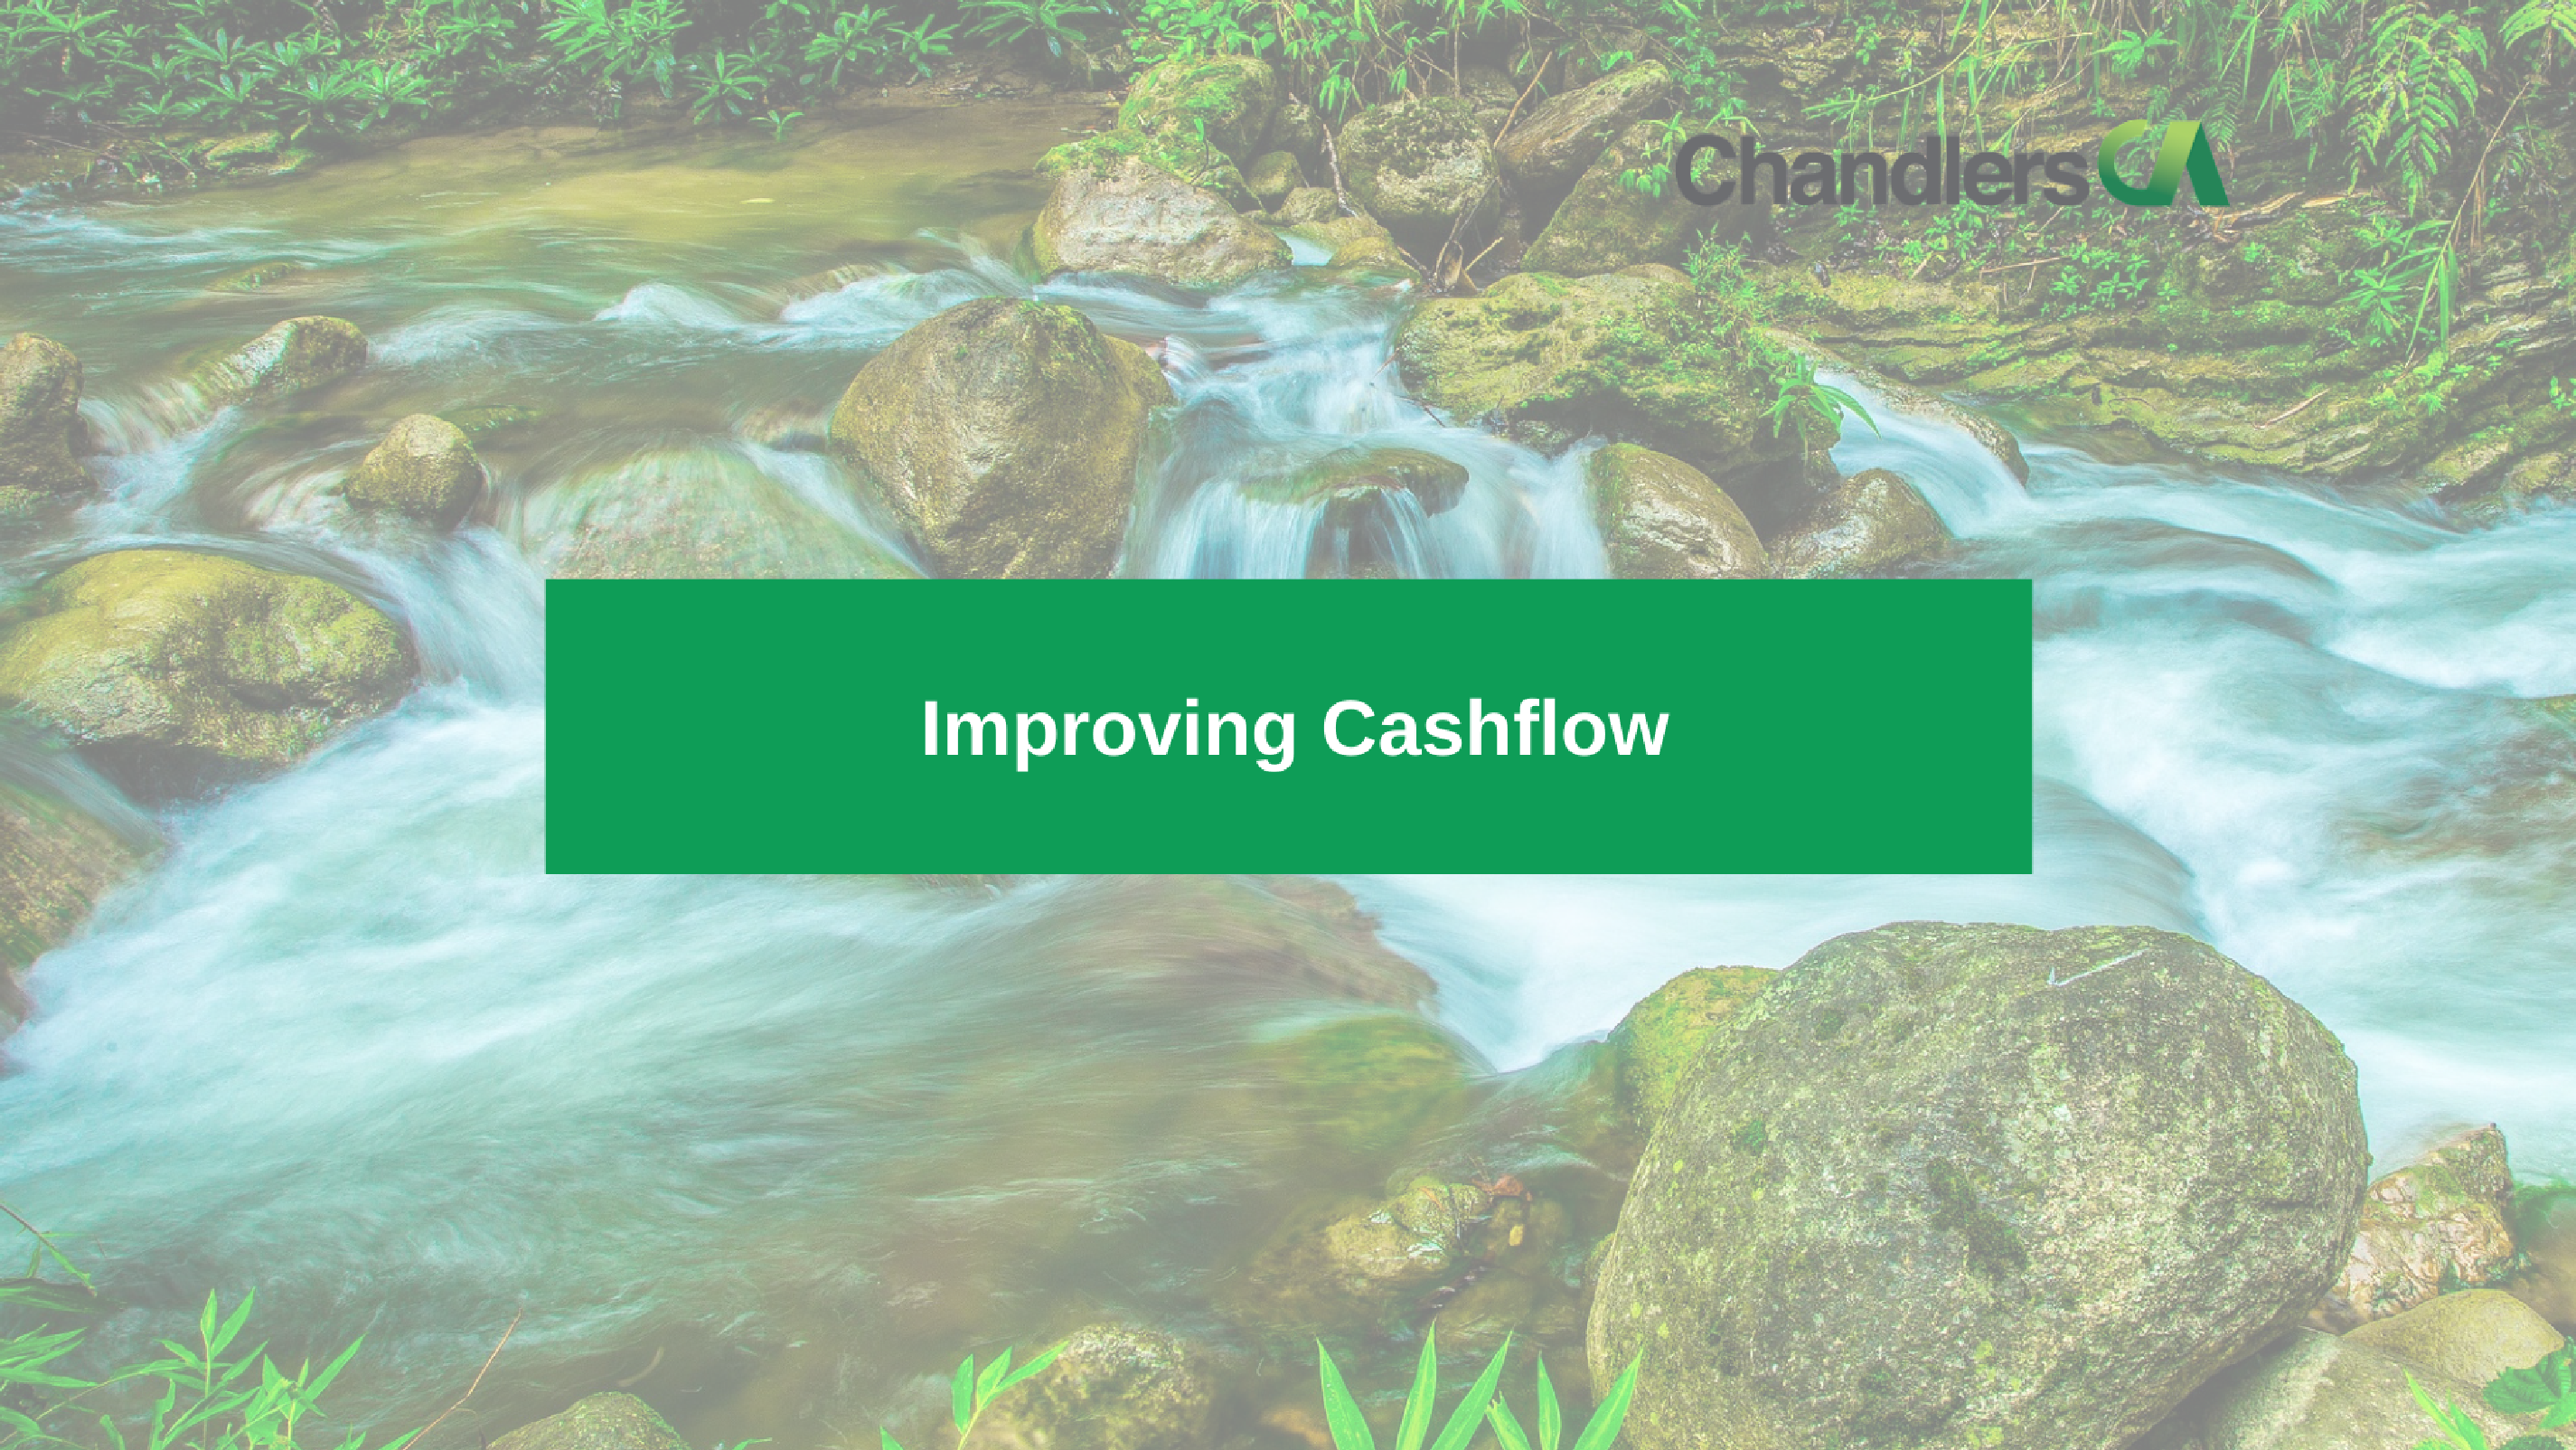 Guide to improving cashflow for a business